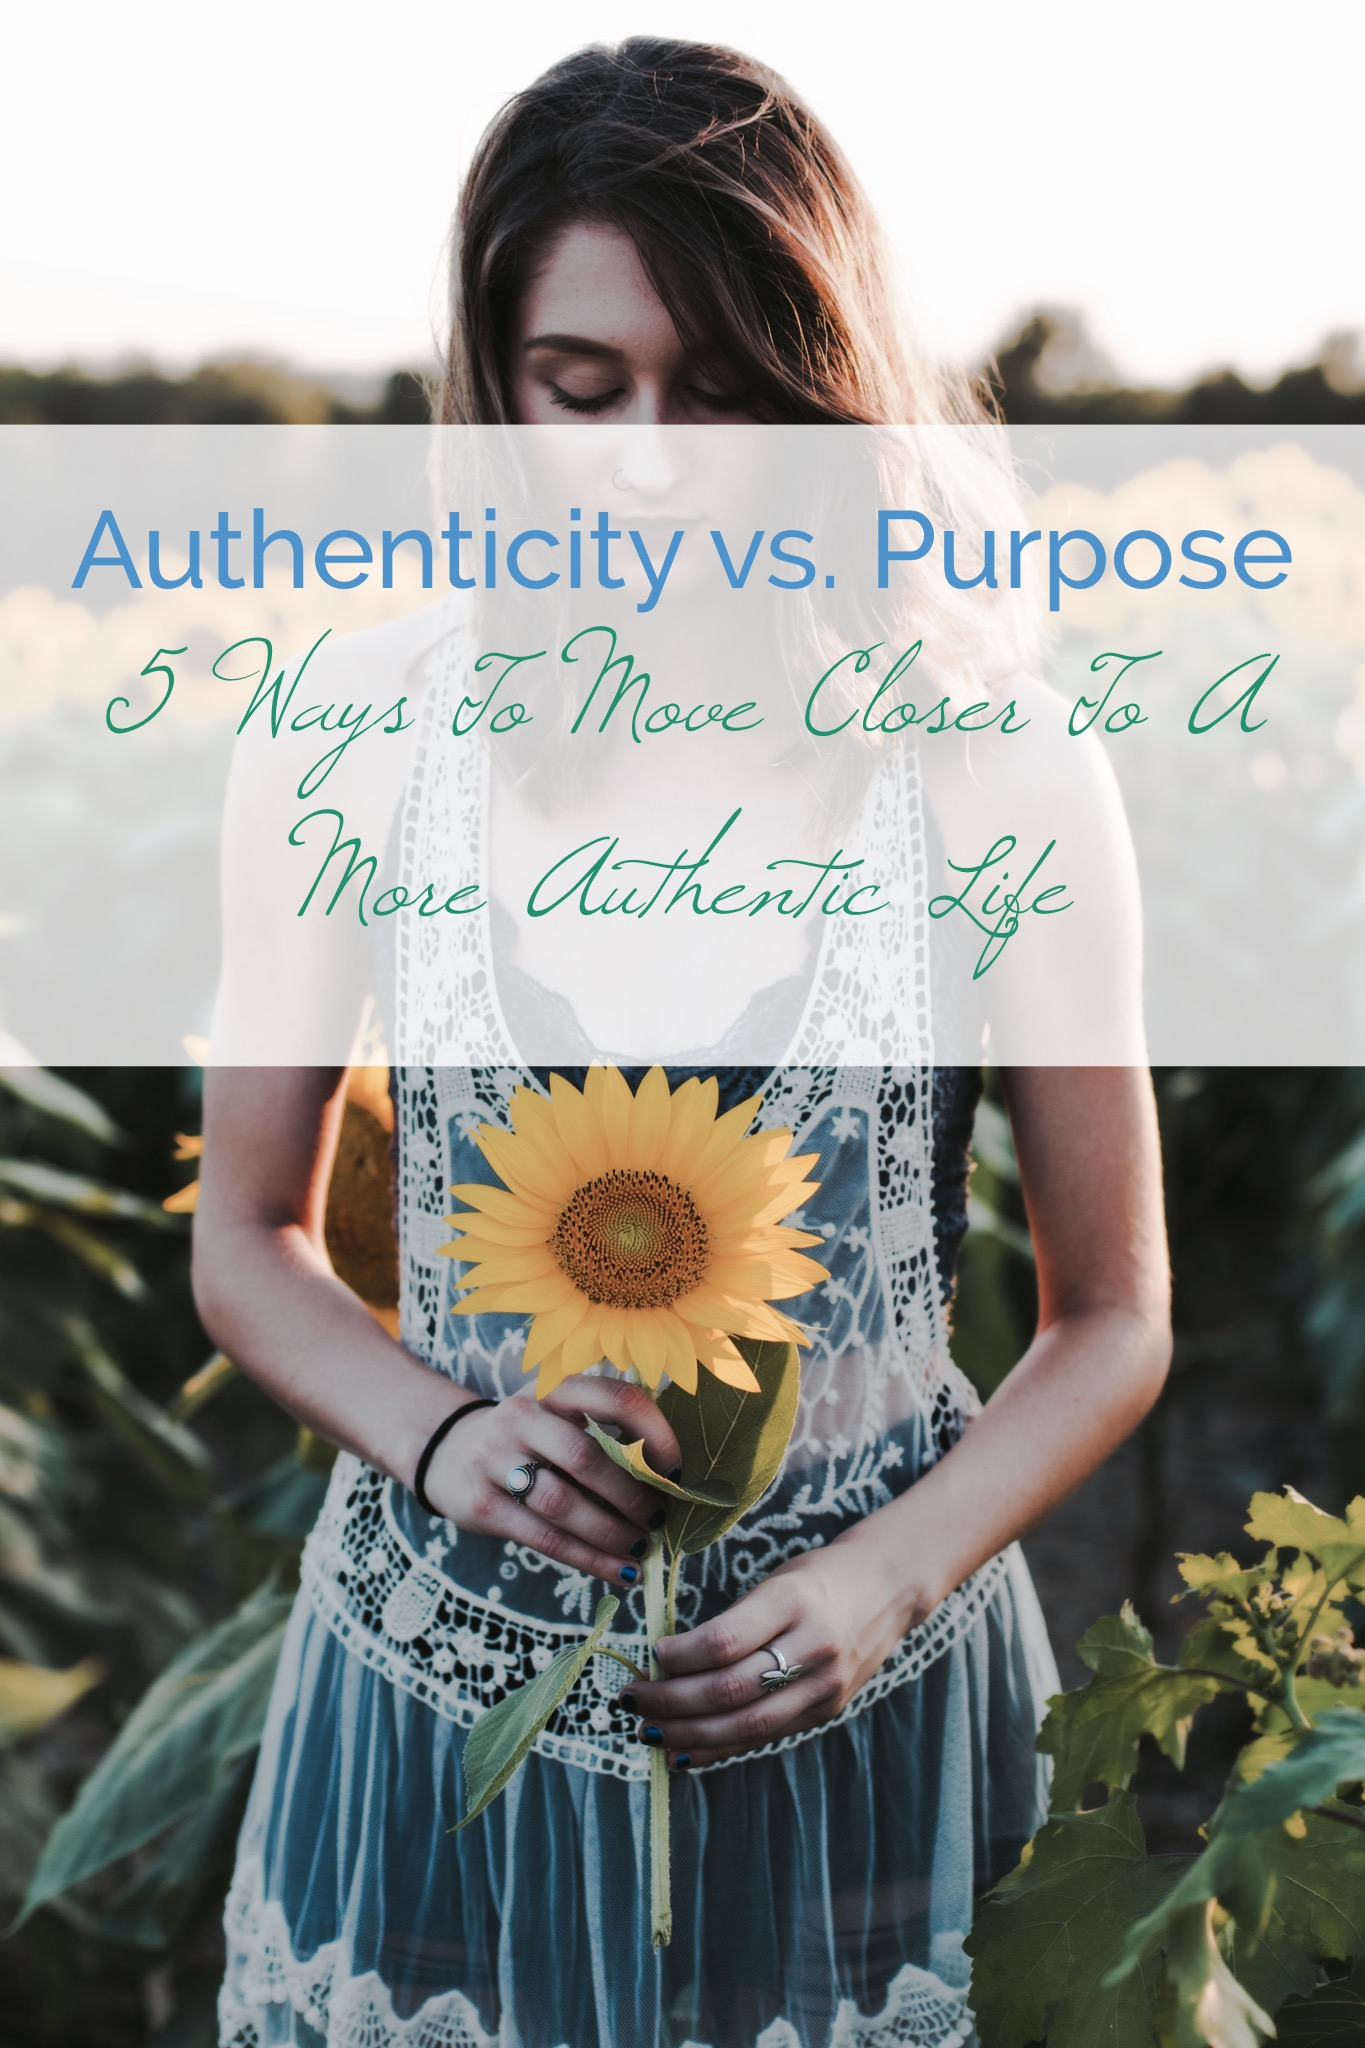 Authenticity vs. Purpose- 5 Ways to move closer to a more authentic life.